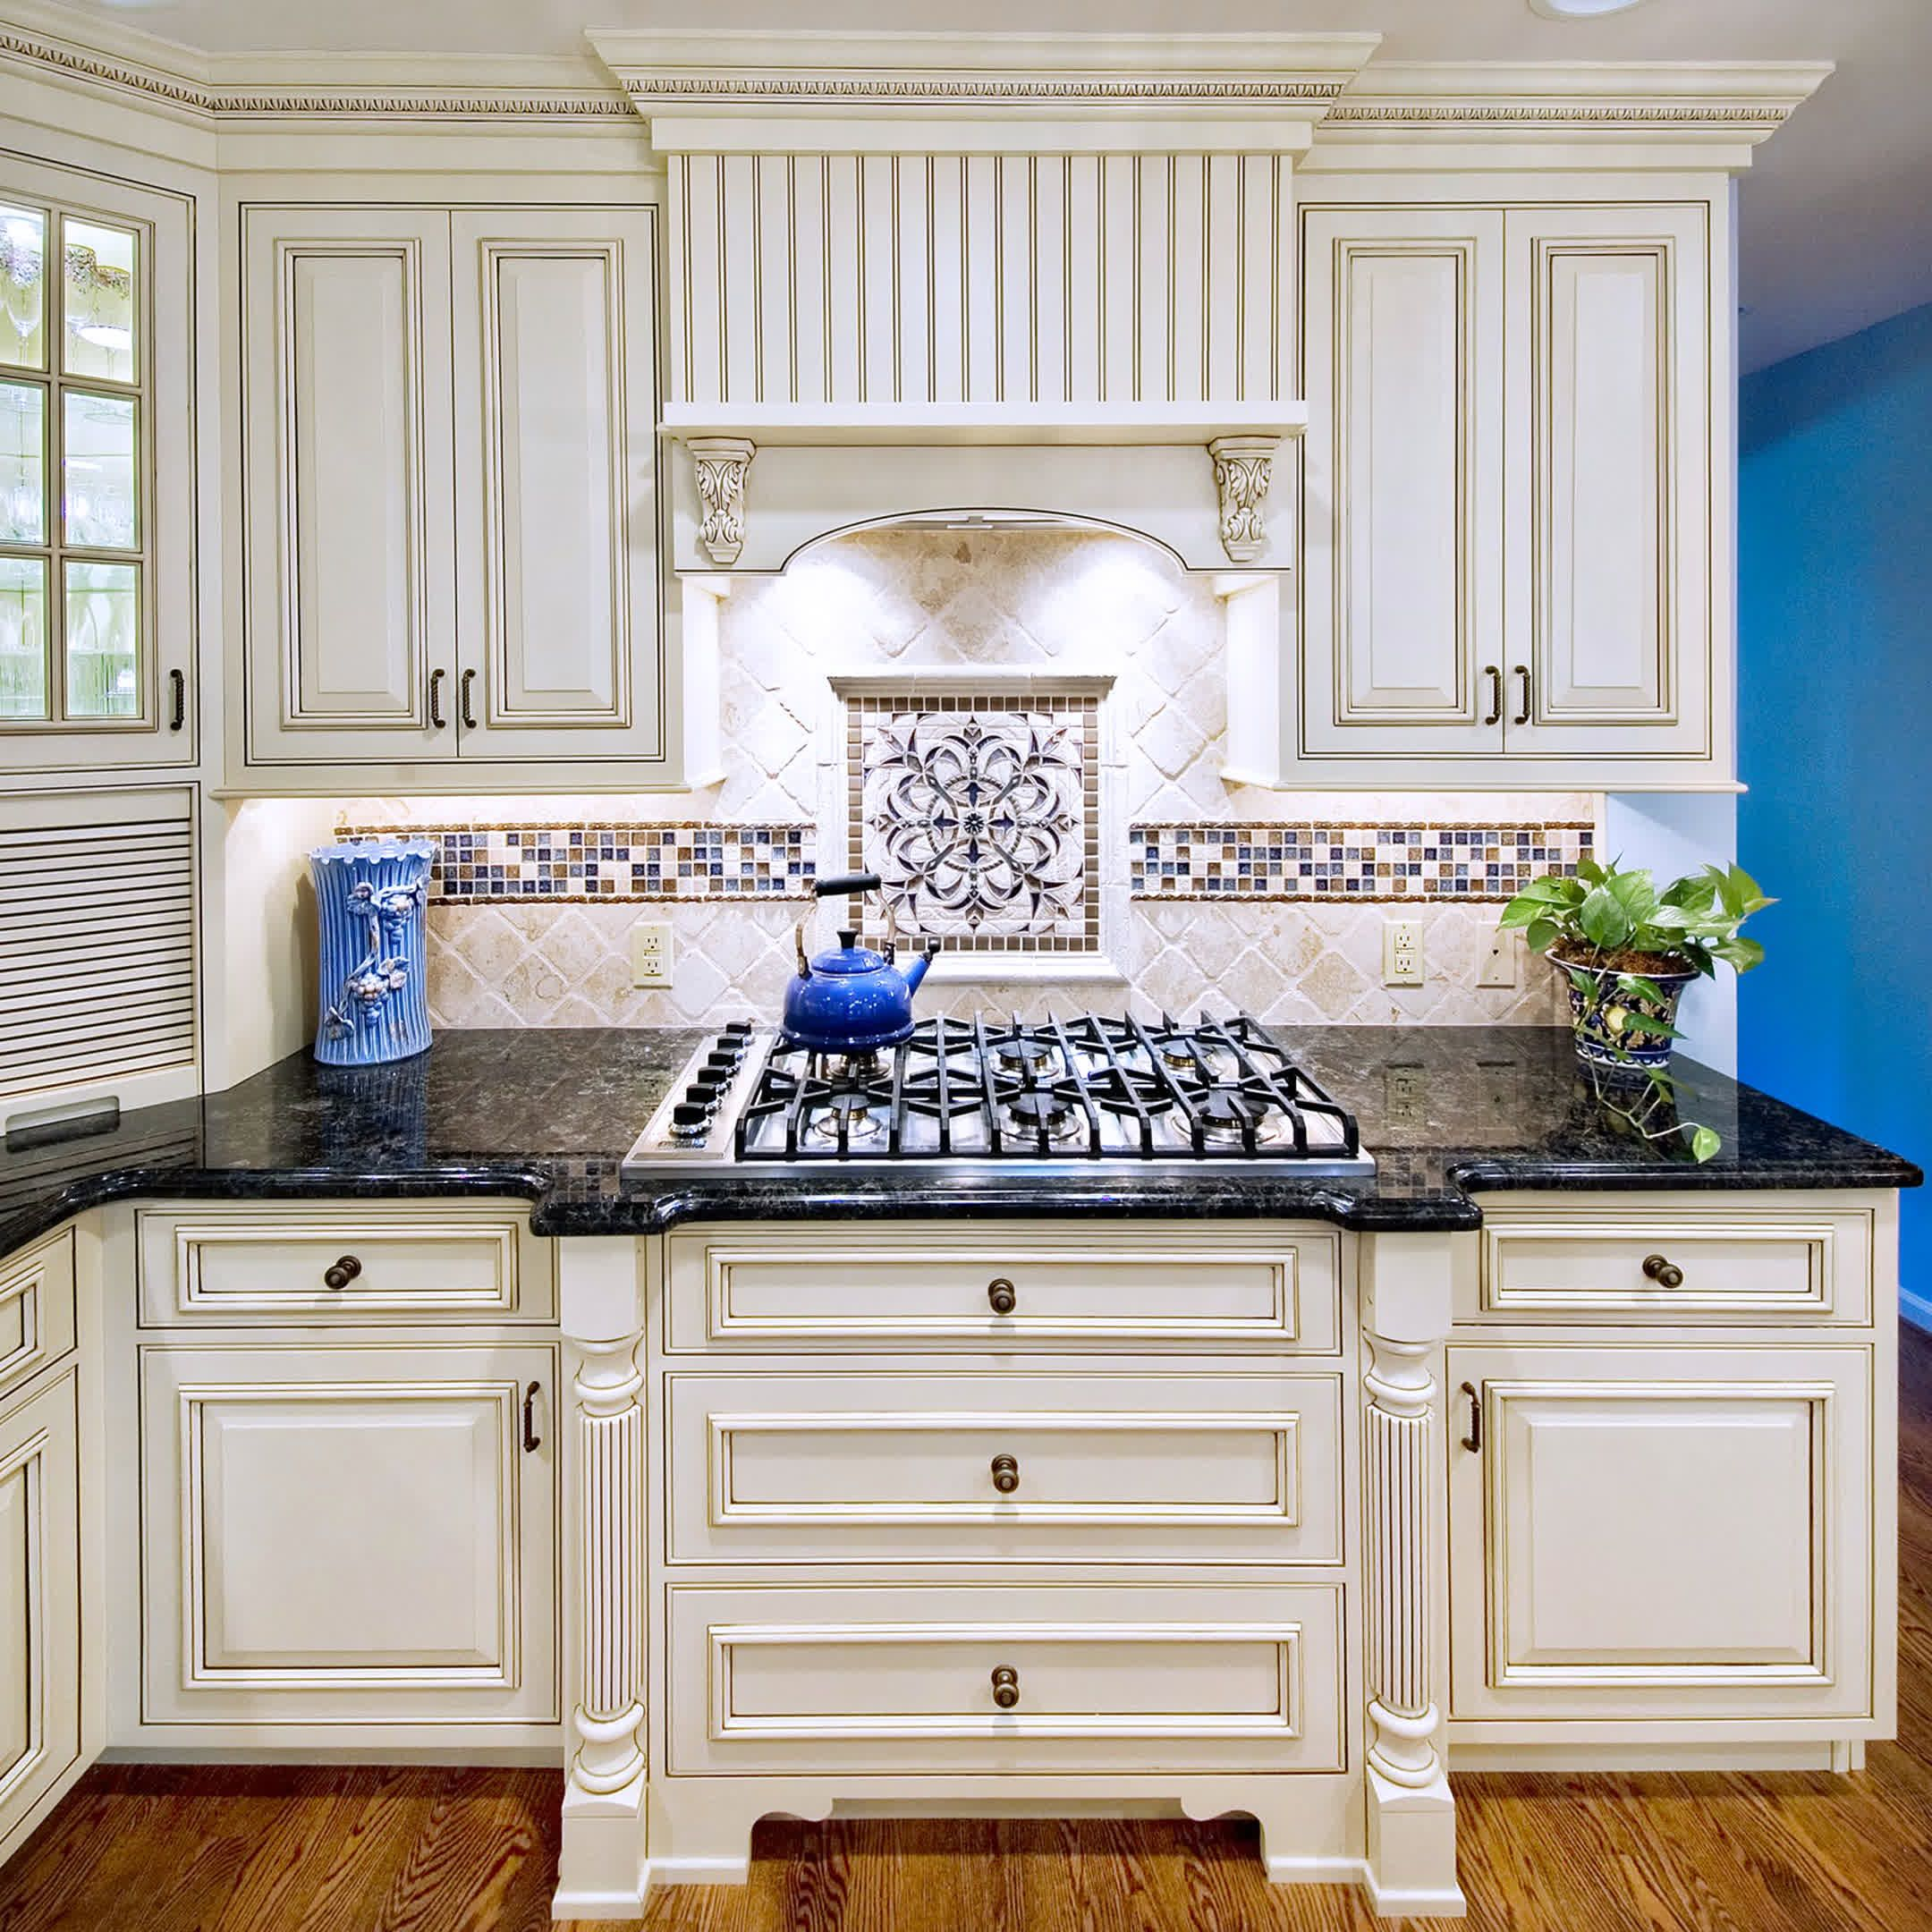 Blue Countertops White Cabinets Tile Kitchen Countertops Ideas Kitchen Backsplash Ideas